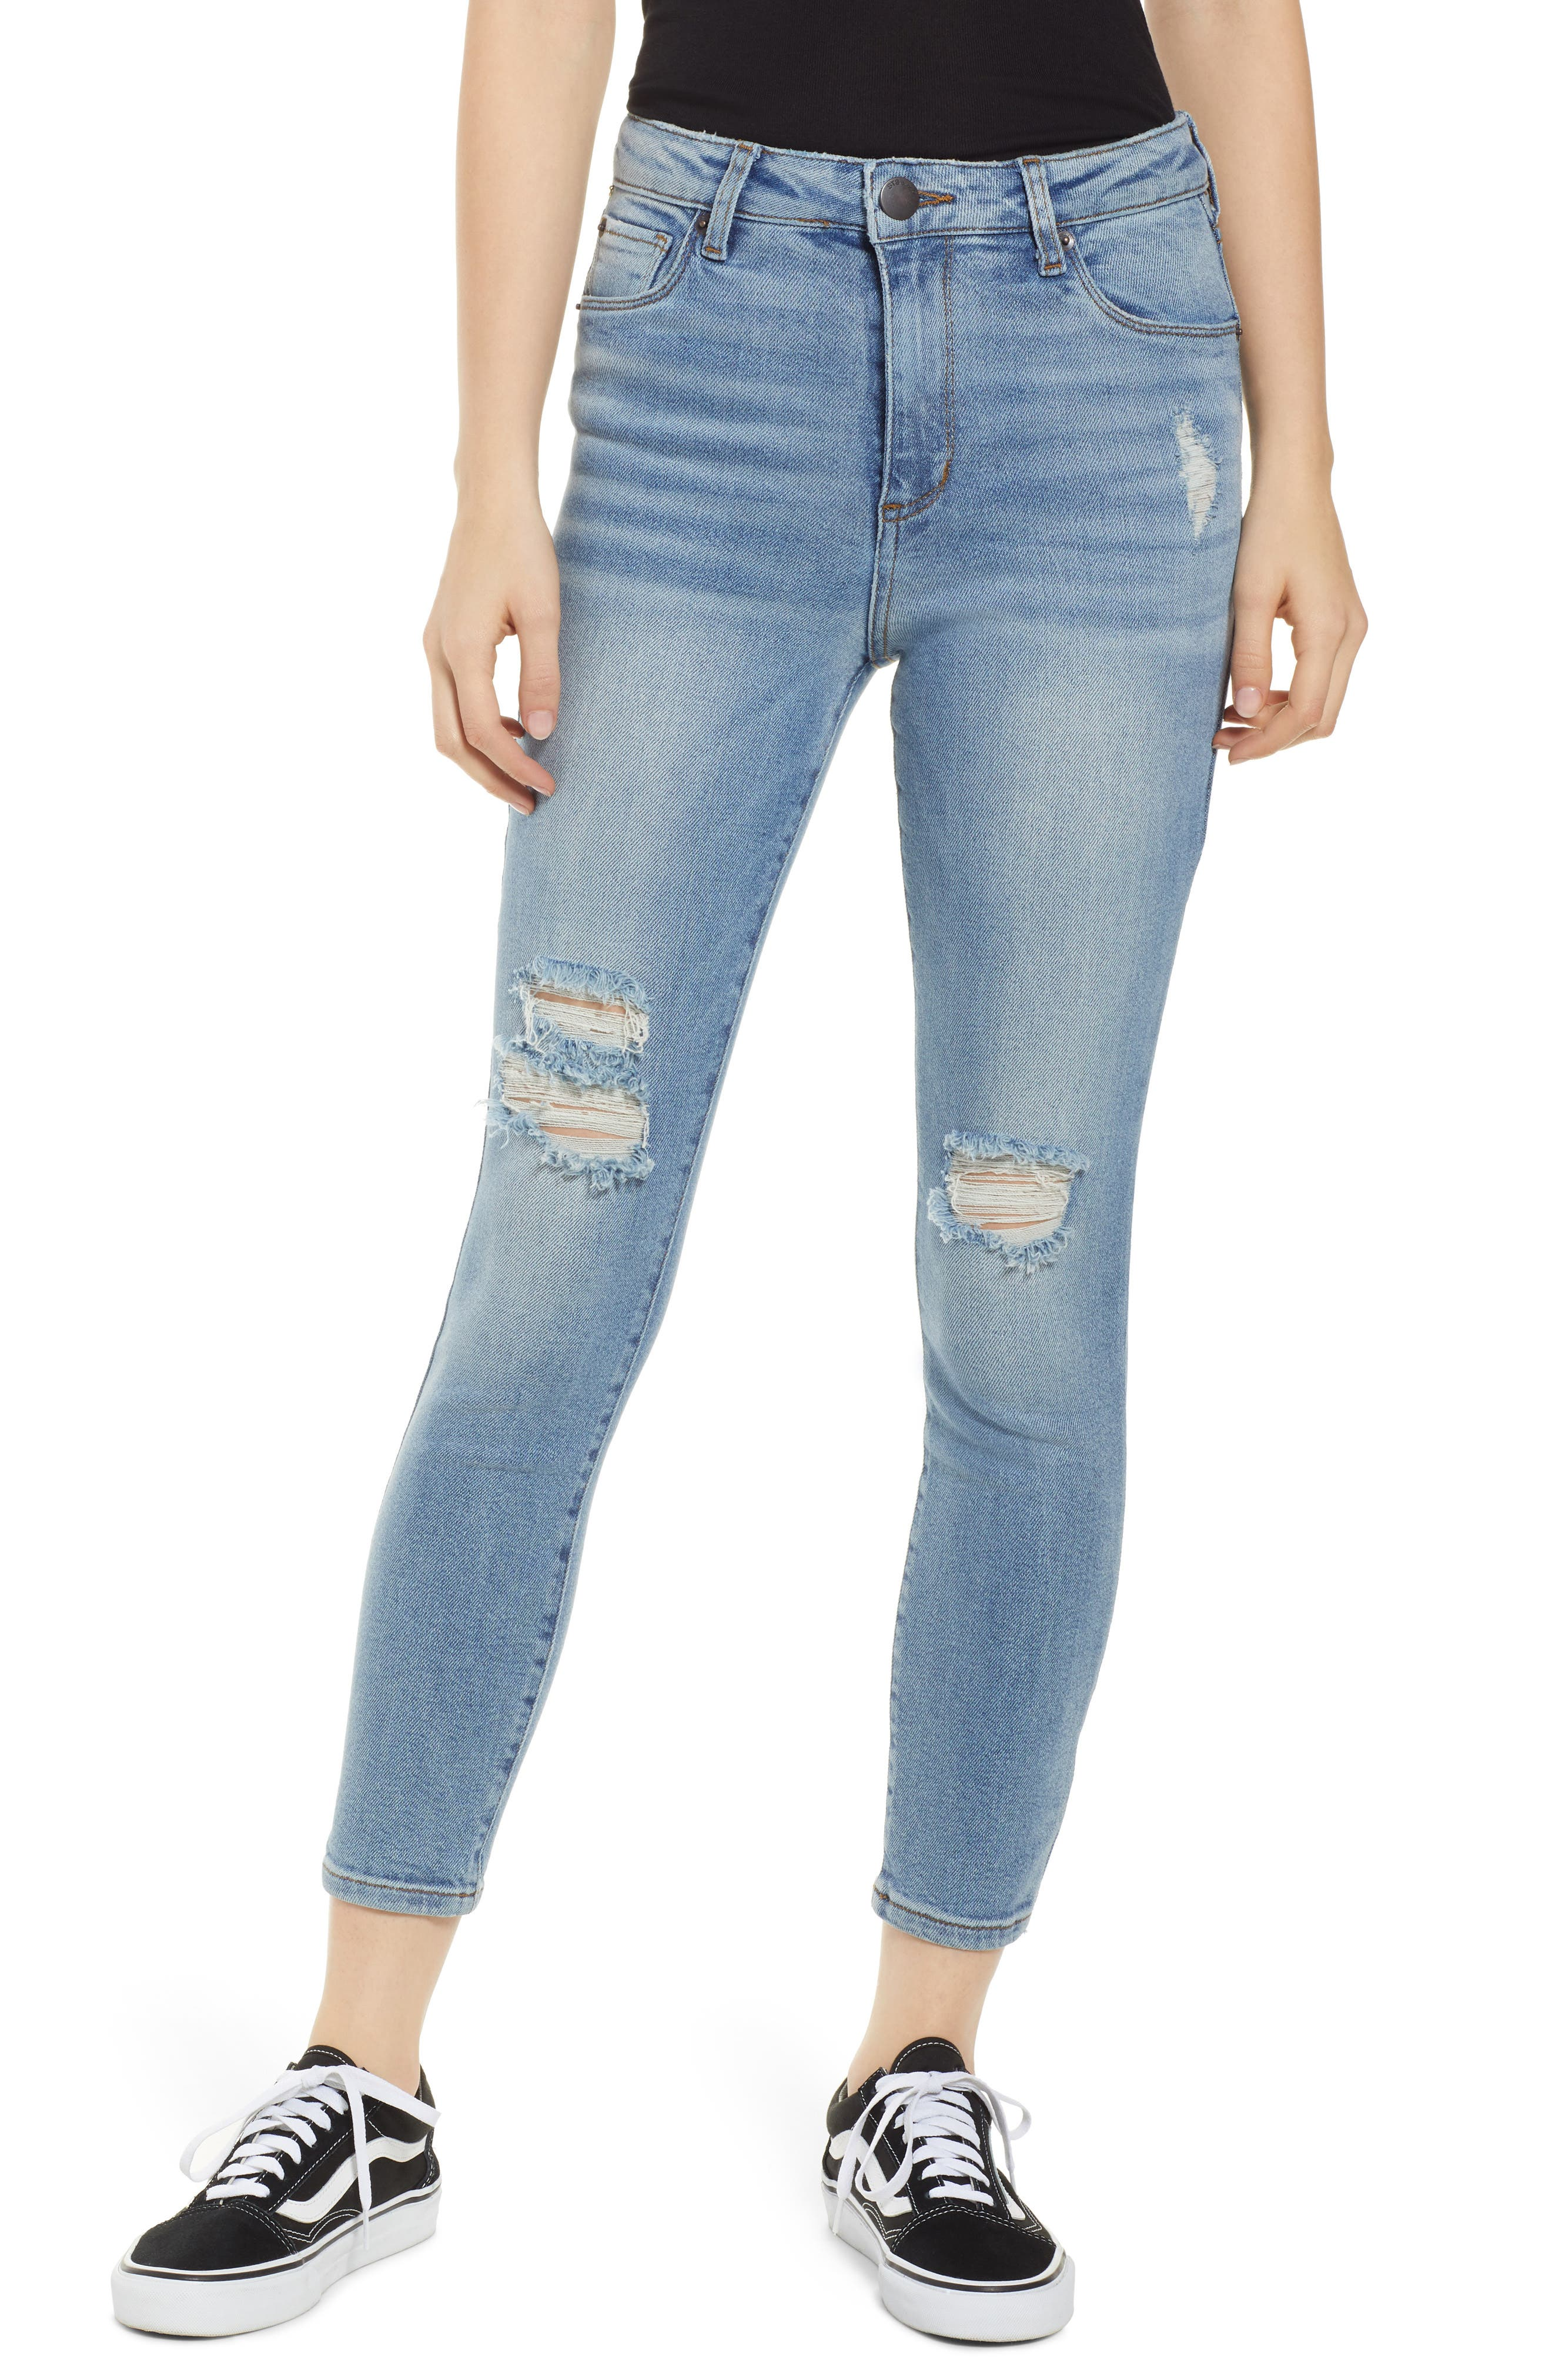 STS BLUE Brie High Waist Ripped Skinny Jeans, Main, color, 400